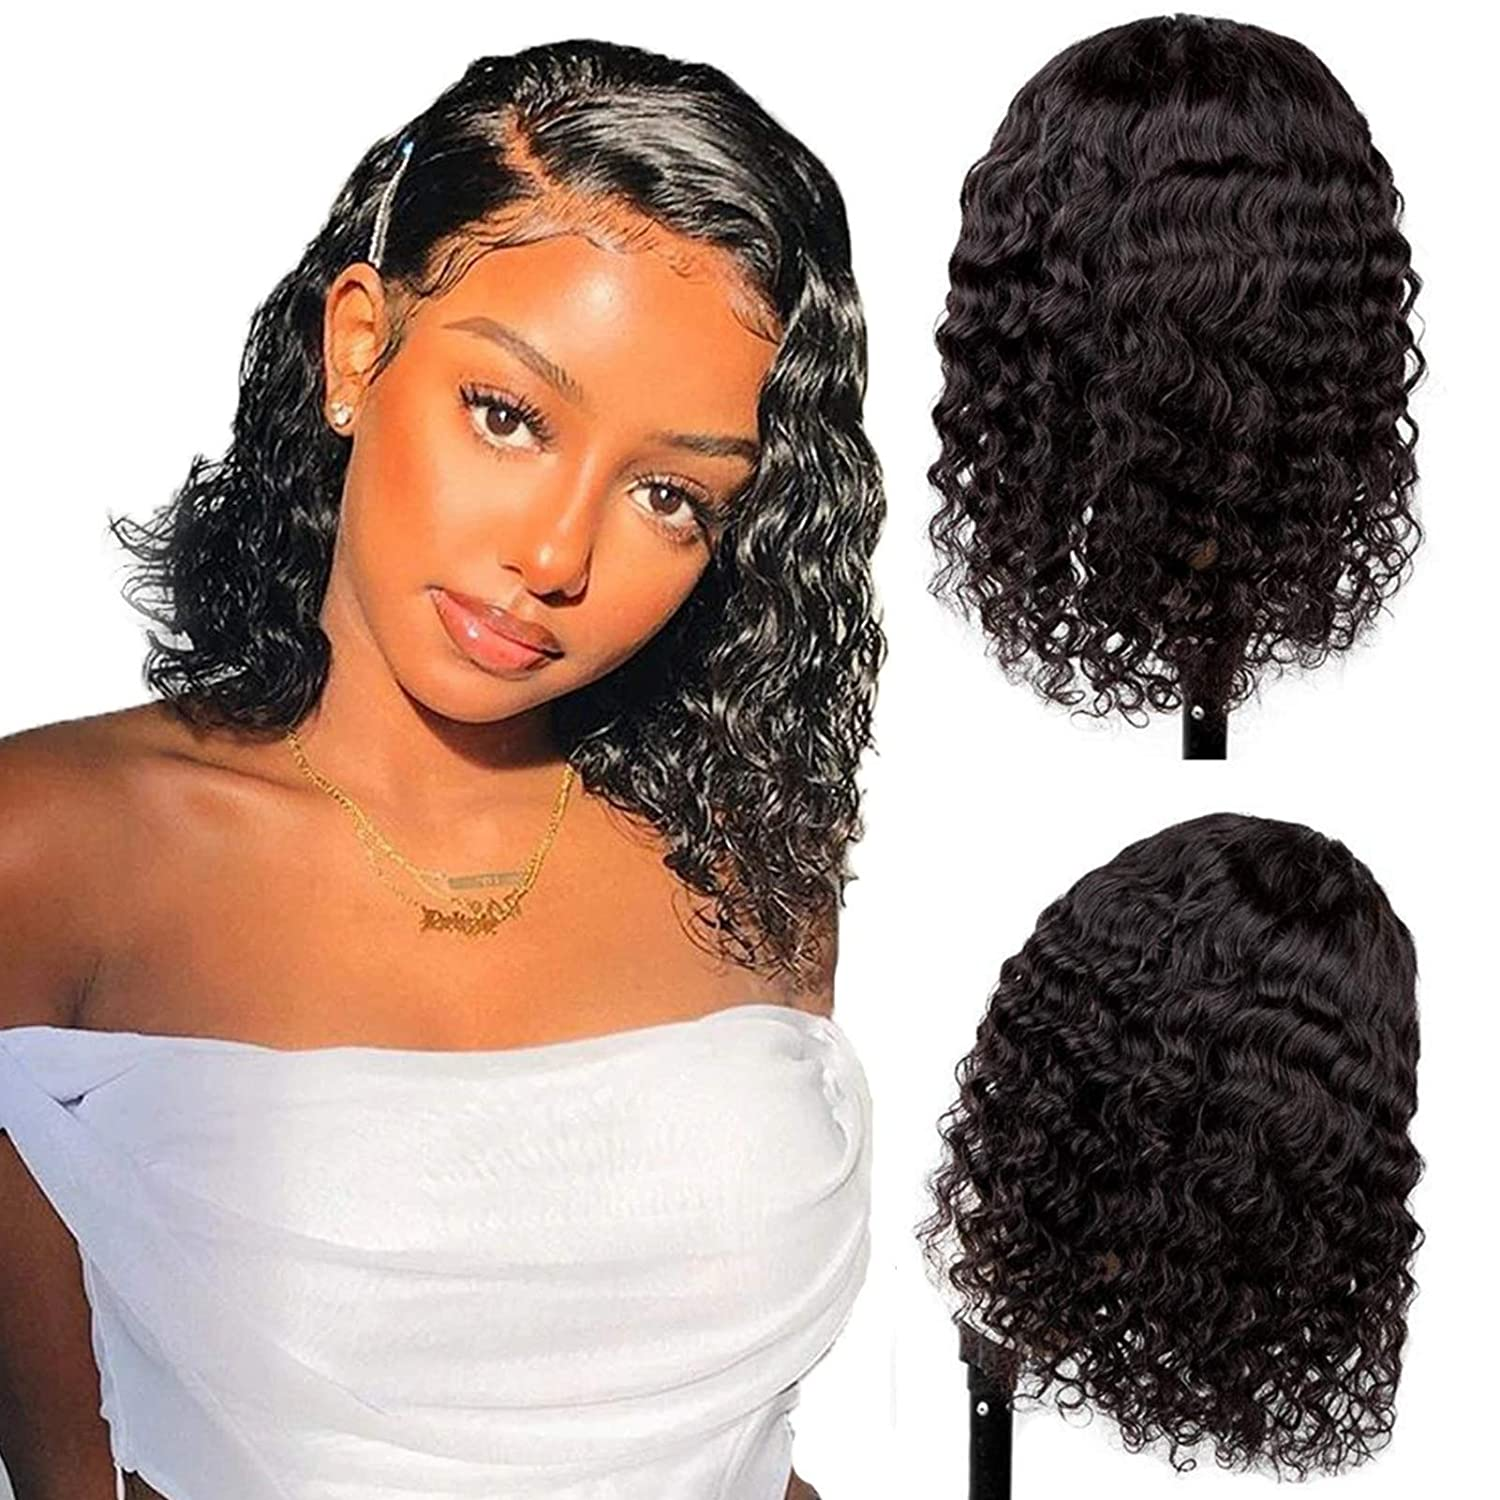 Short Deep Wave Bob Wigs 4x4 Lace Closure For Black women Brazilian Remy Human Hair 13x4 Front Curly Pre Plucked with Baby Hair